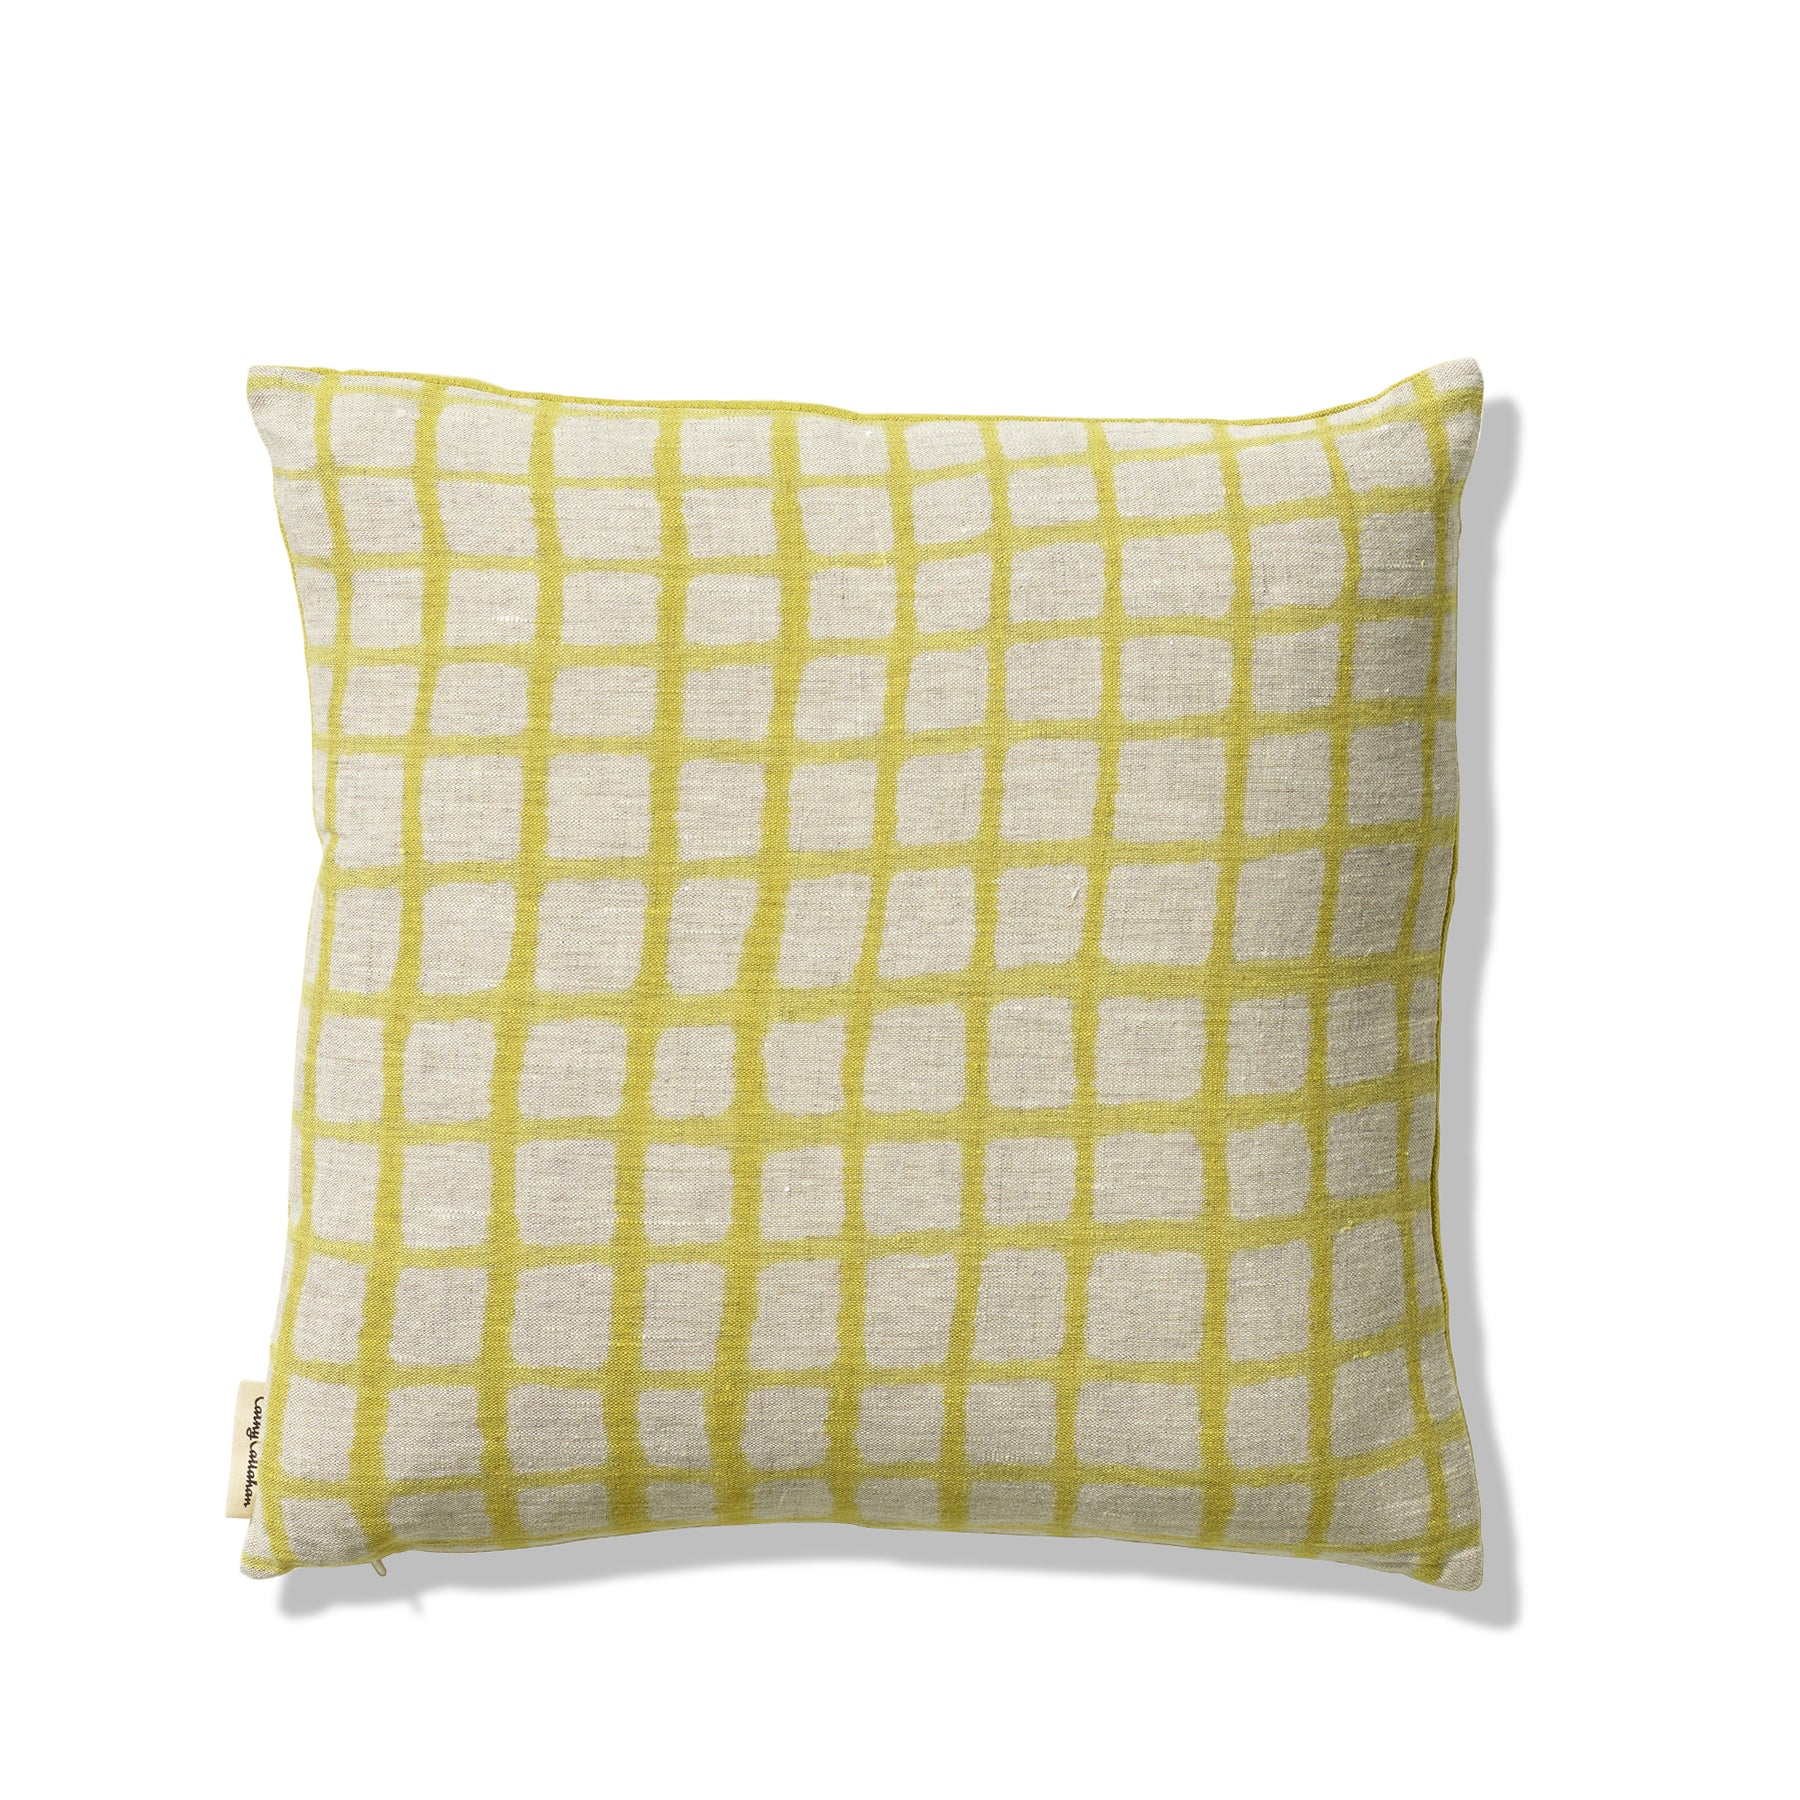 Handpainted Pillow in Citrus Zoom Image 1